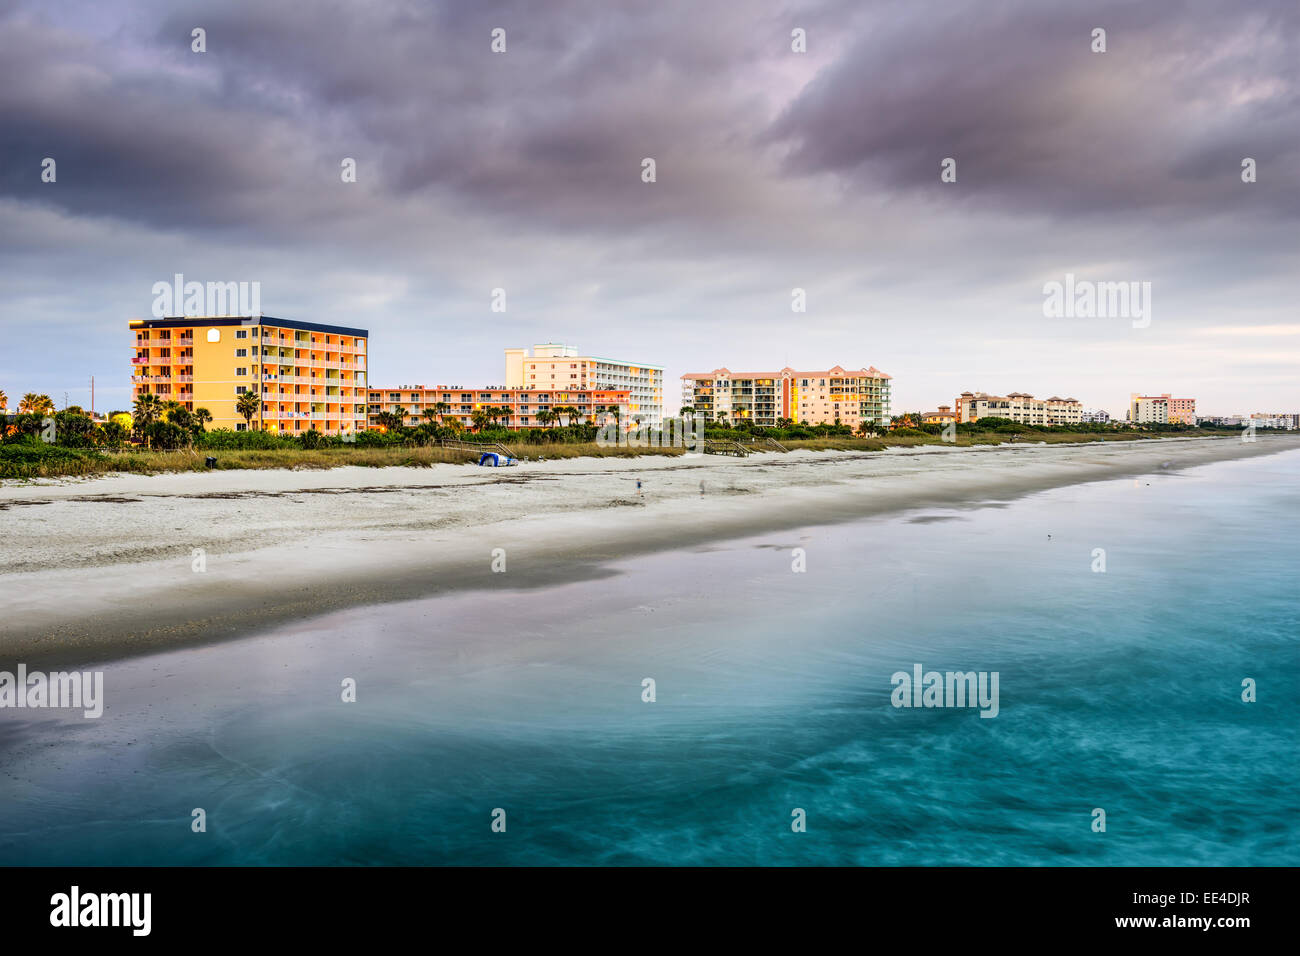 Cocoa Beach, Florida beachfront hotels and resorts. - Stock Image